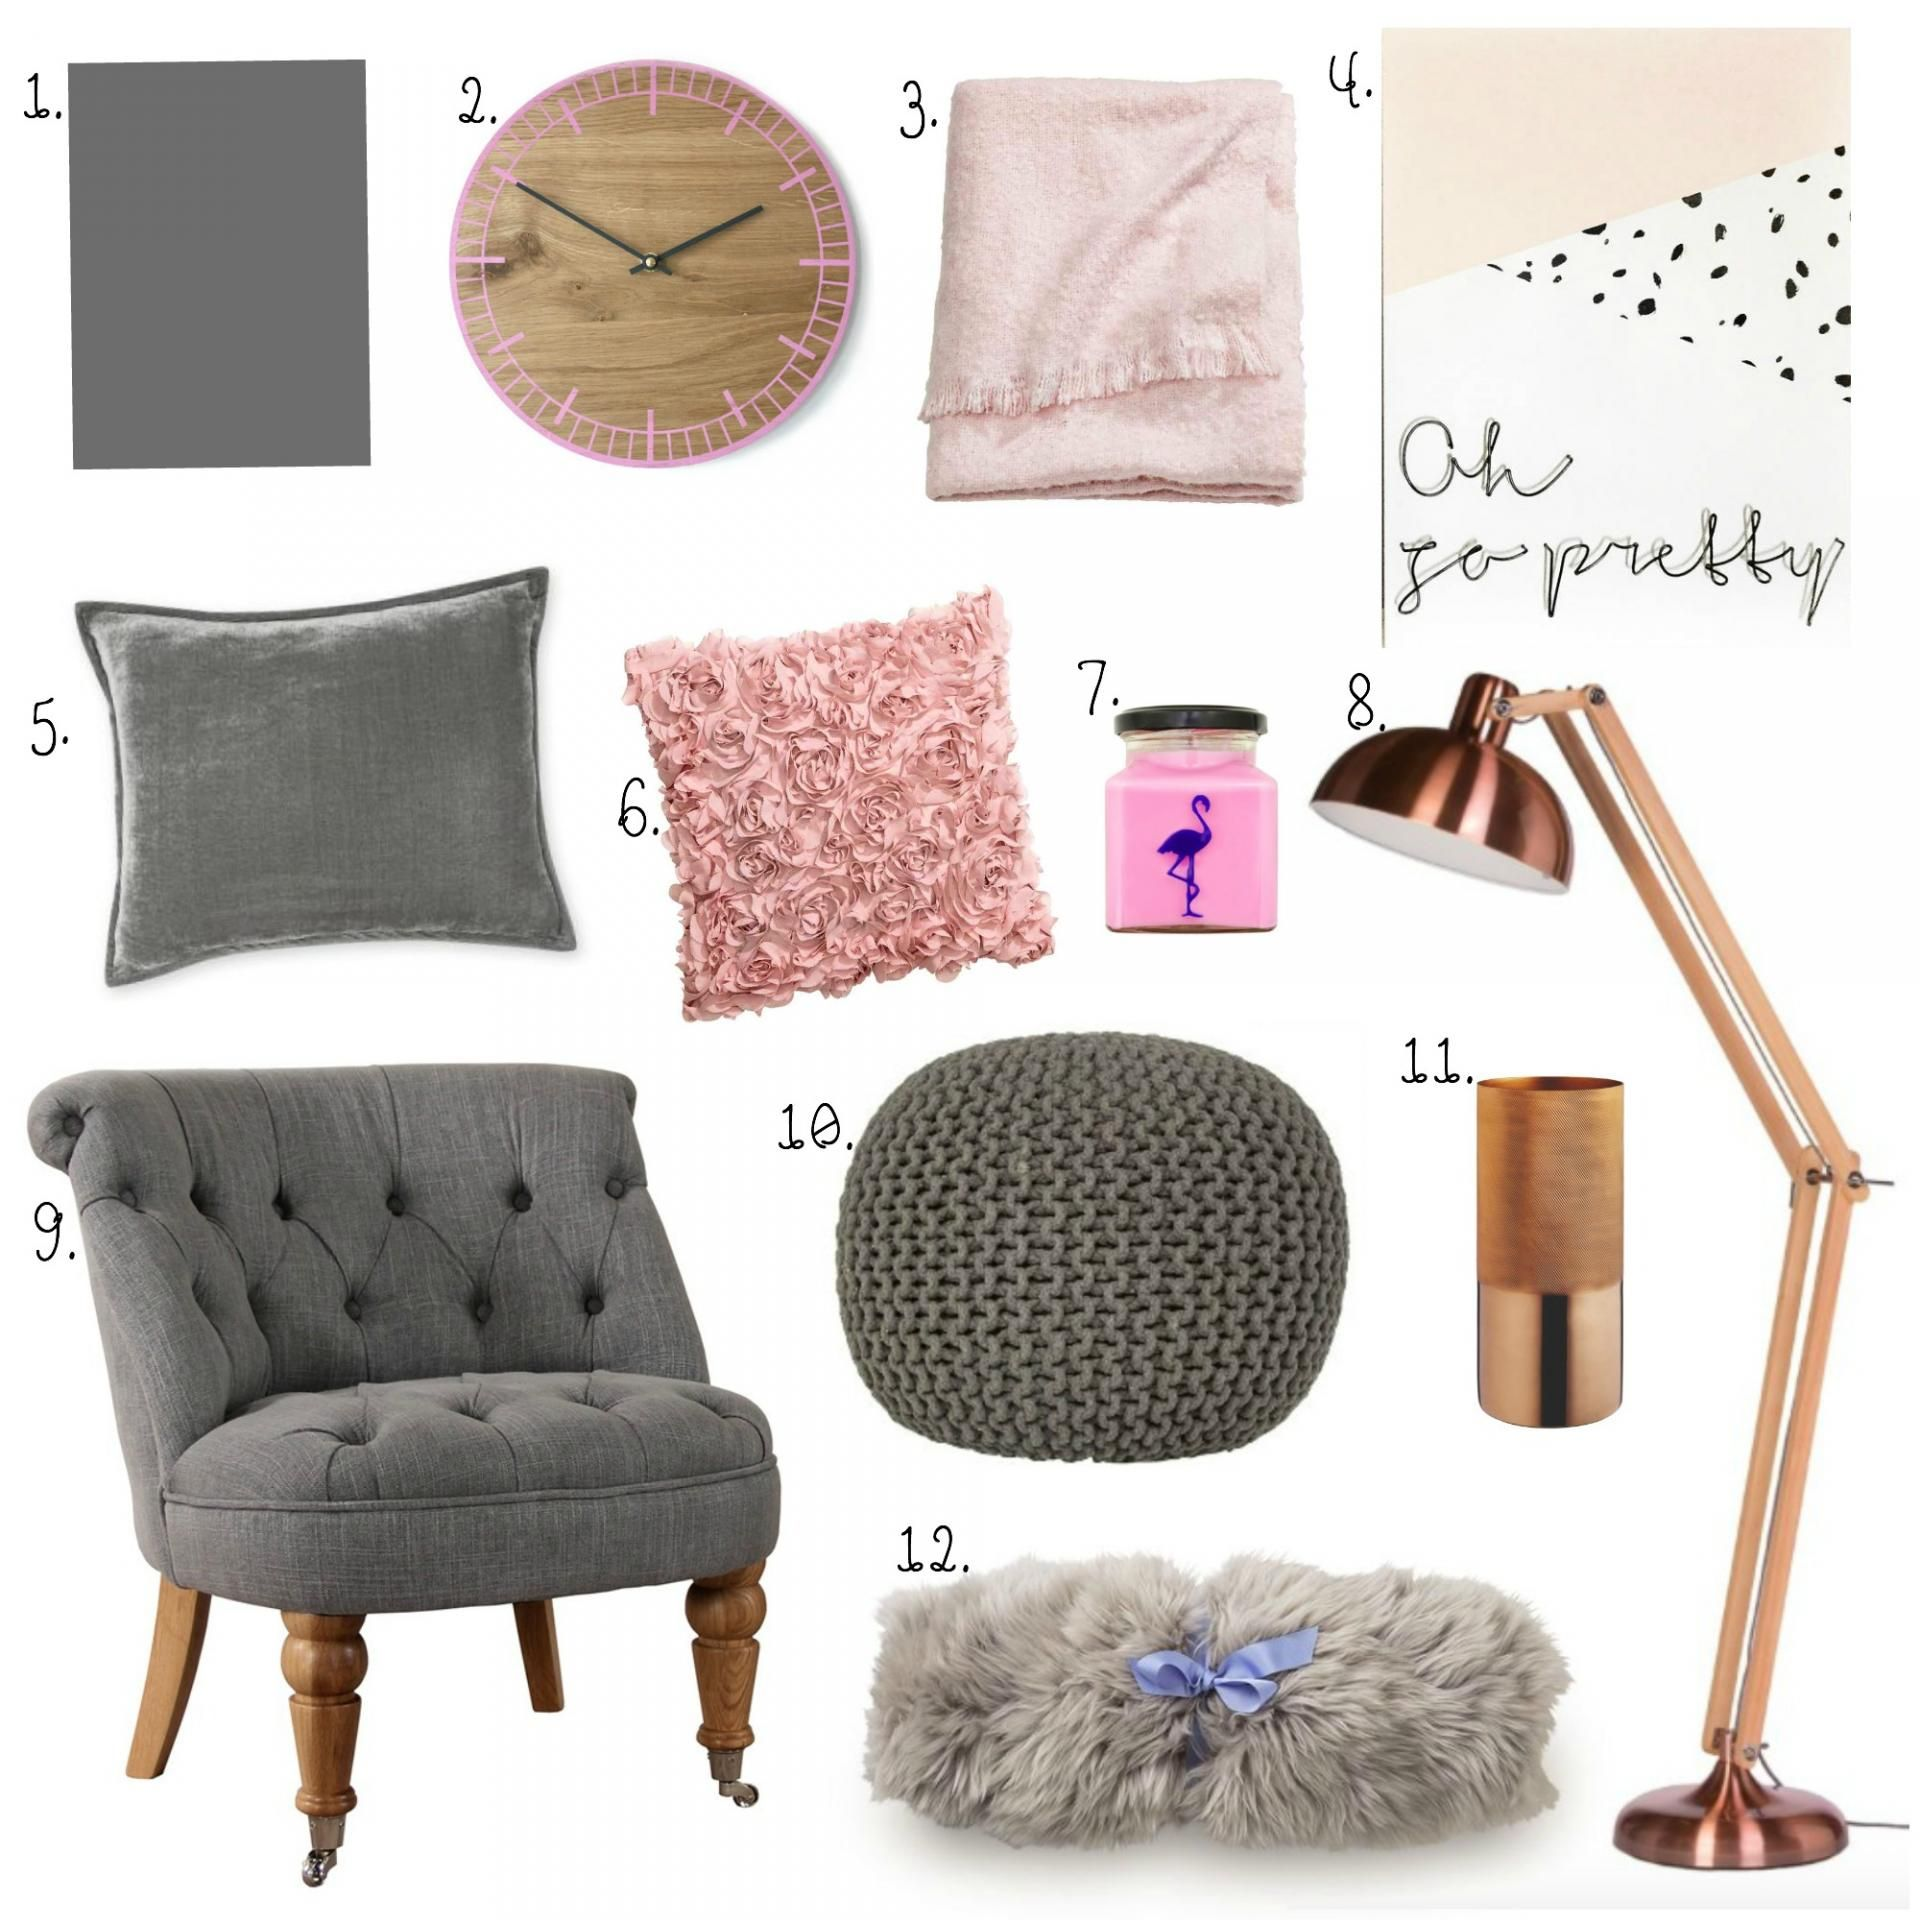 16 Rose Gold And Copper Details For Stylish Interior Decor: Grey, Blush Pink & Copper